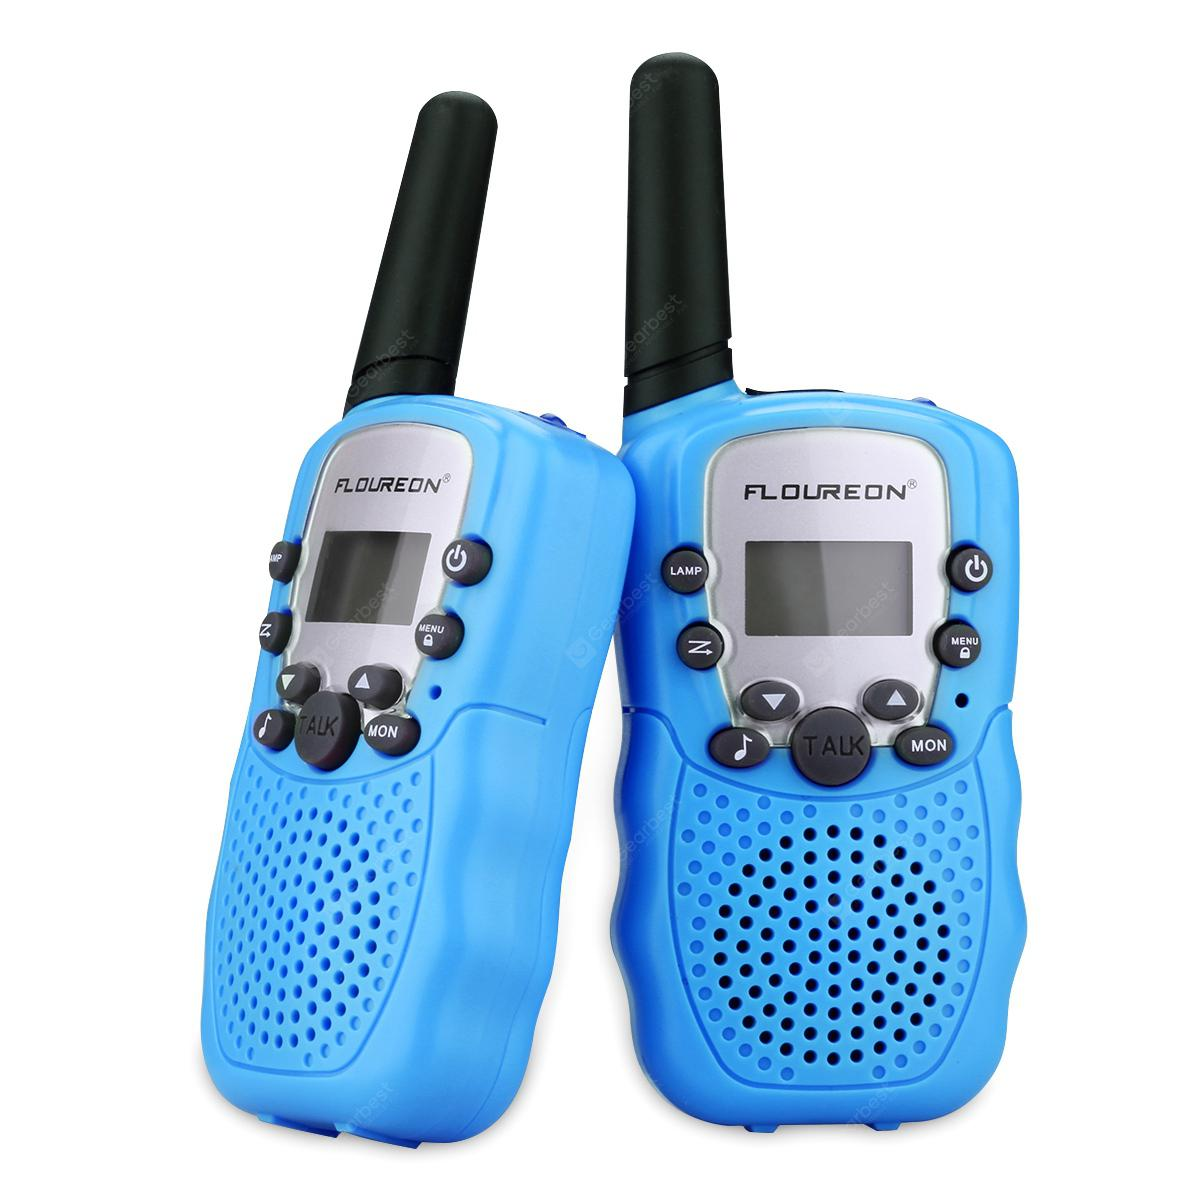 FLOUREON 22 Channel Twin Walkie Talkies UHF462-467MHZ 2-Way Radio 3 Km Range Blue